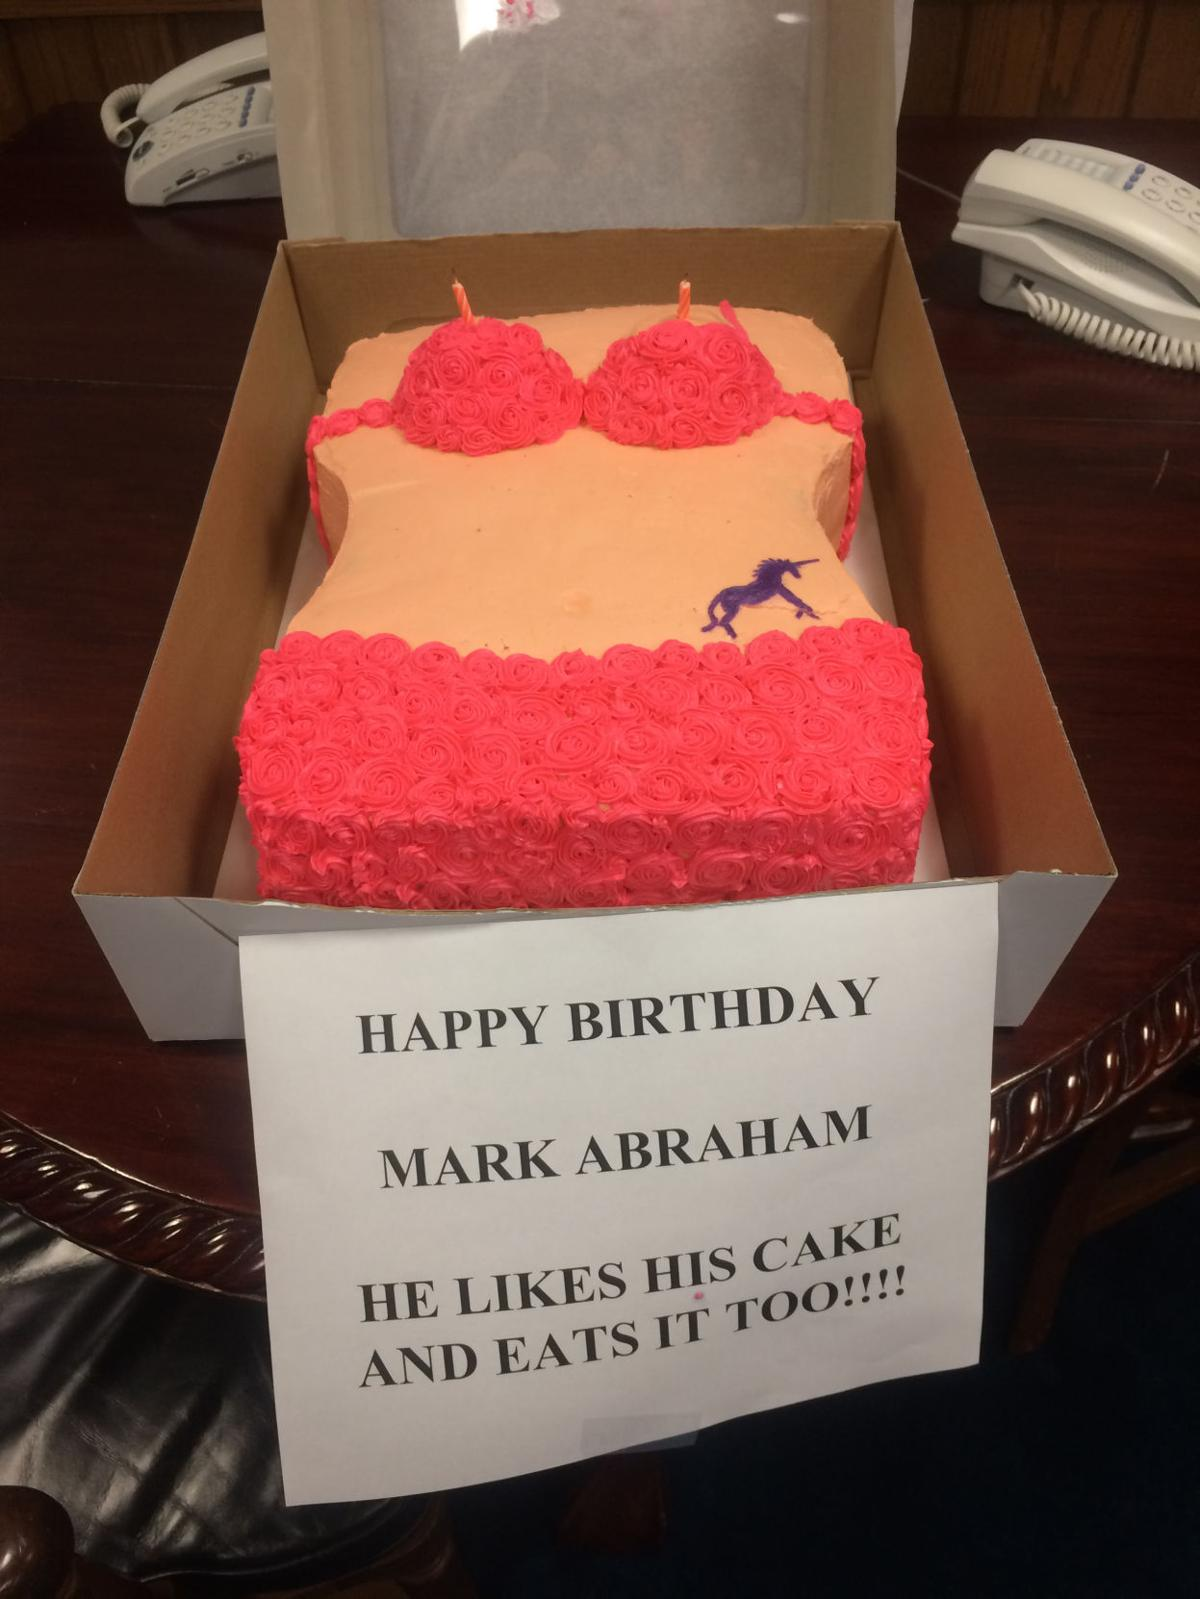 Surprising Bikini Birthday Cake At State Capitol Stirs Anger And Disgust Funny Birthday Cards Online Sheoxdamsfinfo